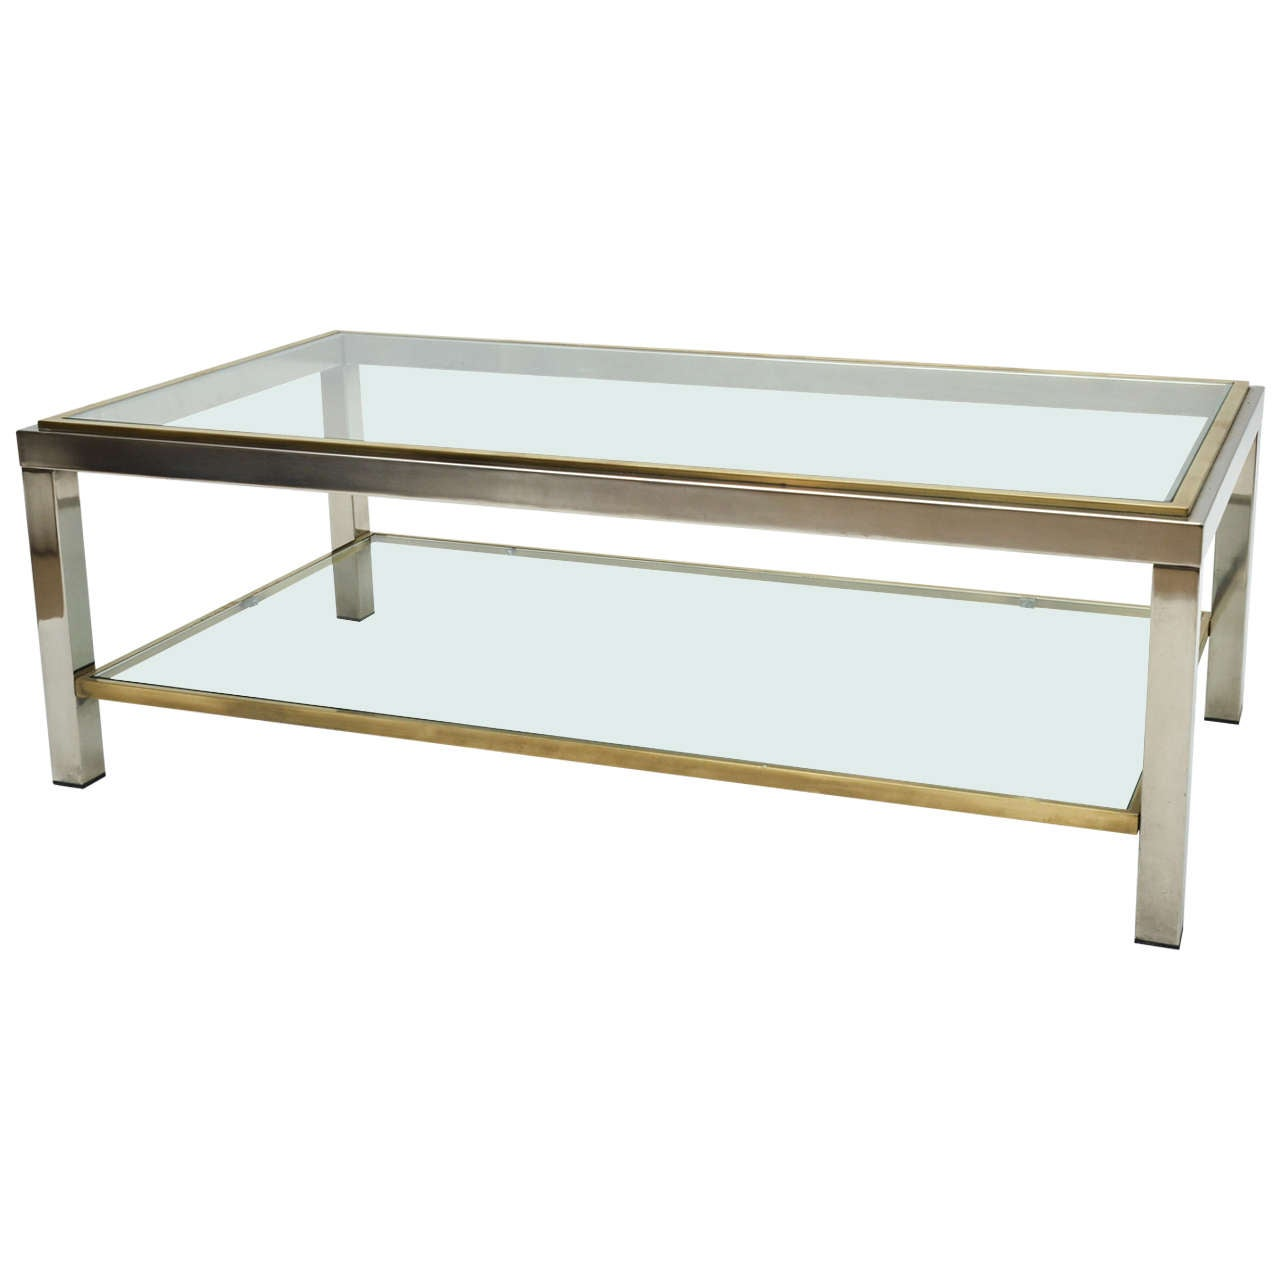 Mid Century Modern French Brass And Chrome Glass Coffee Table At 1stdibs